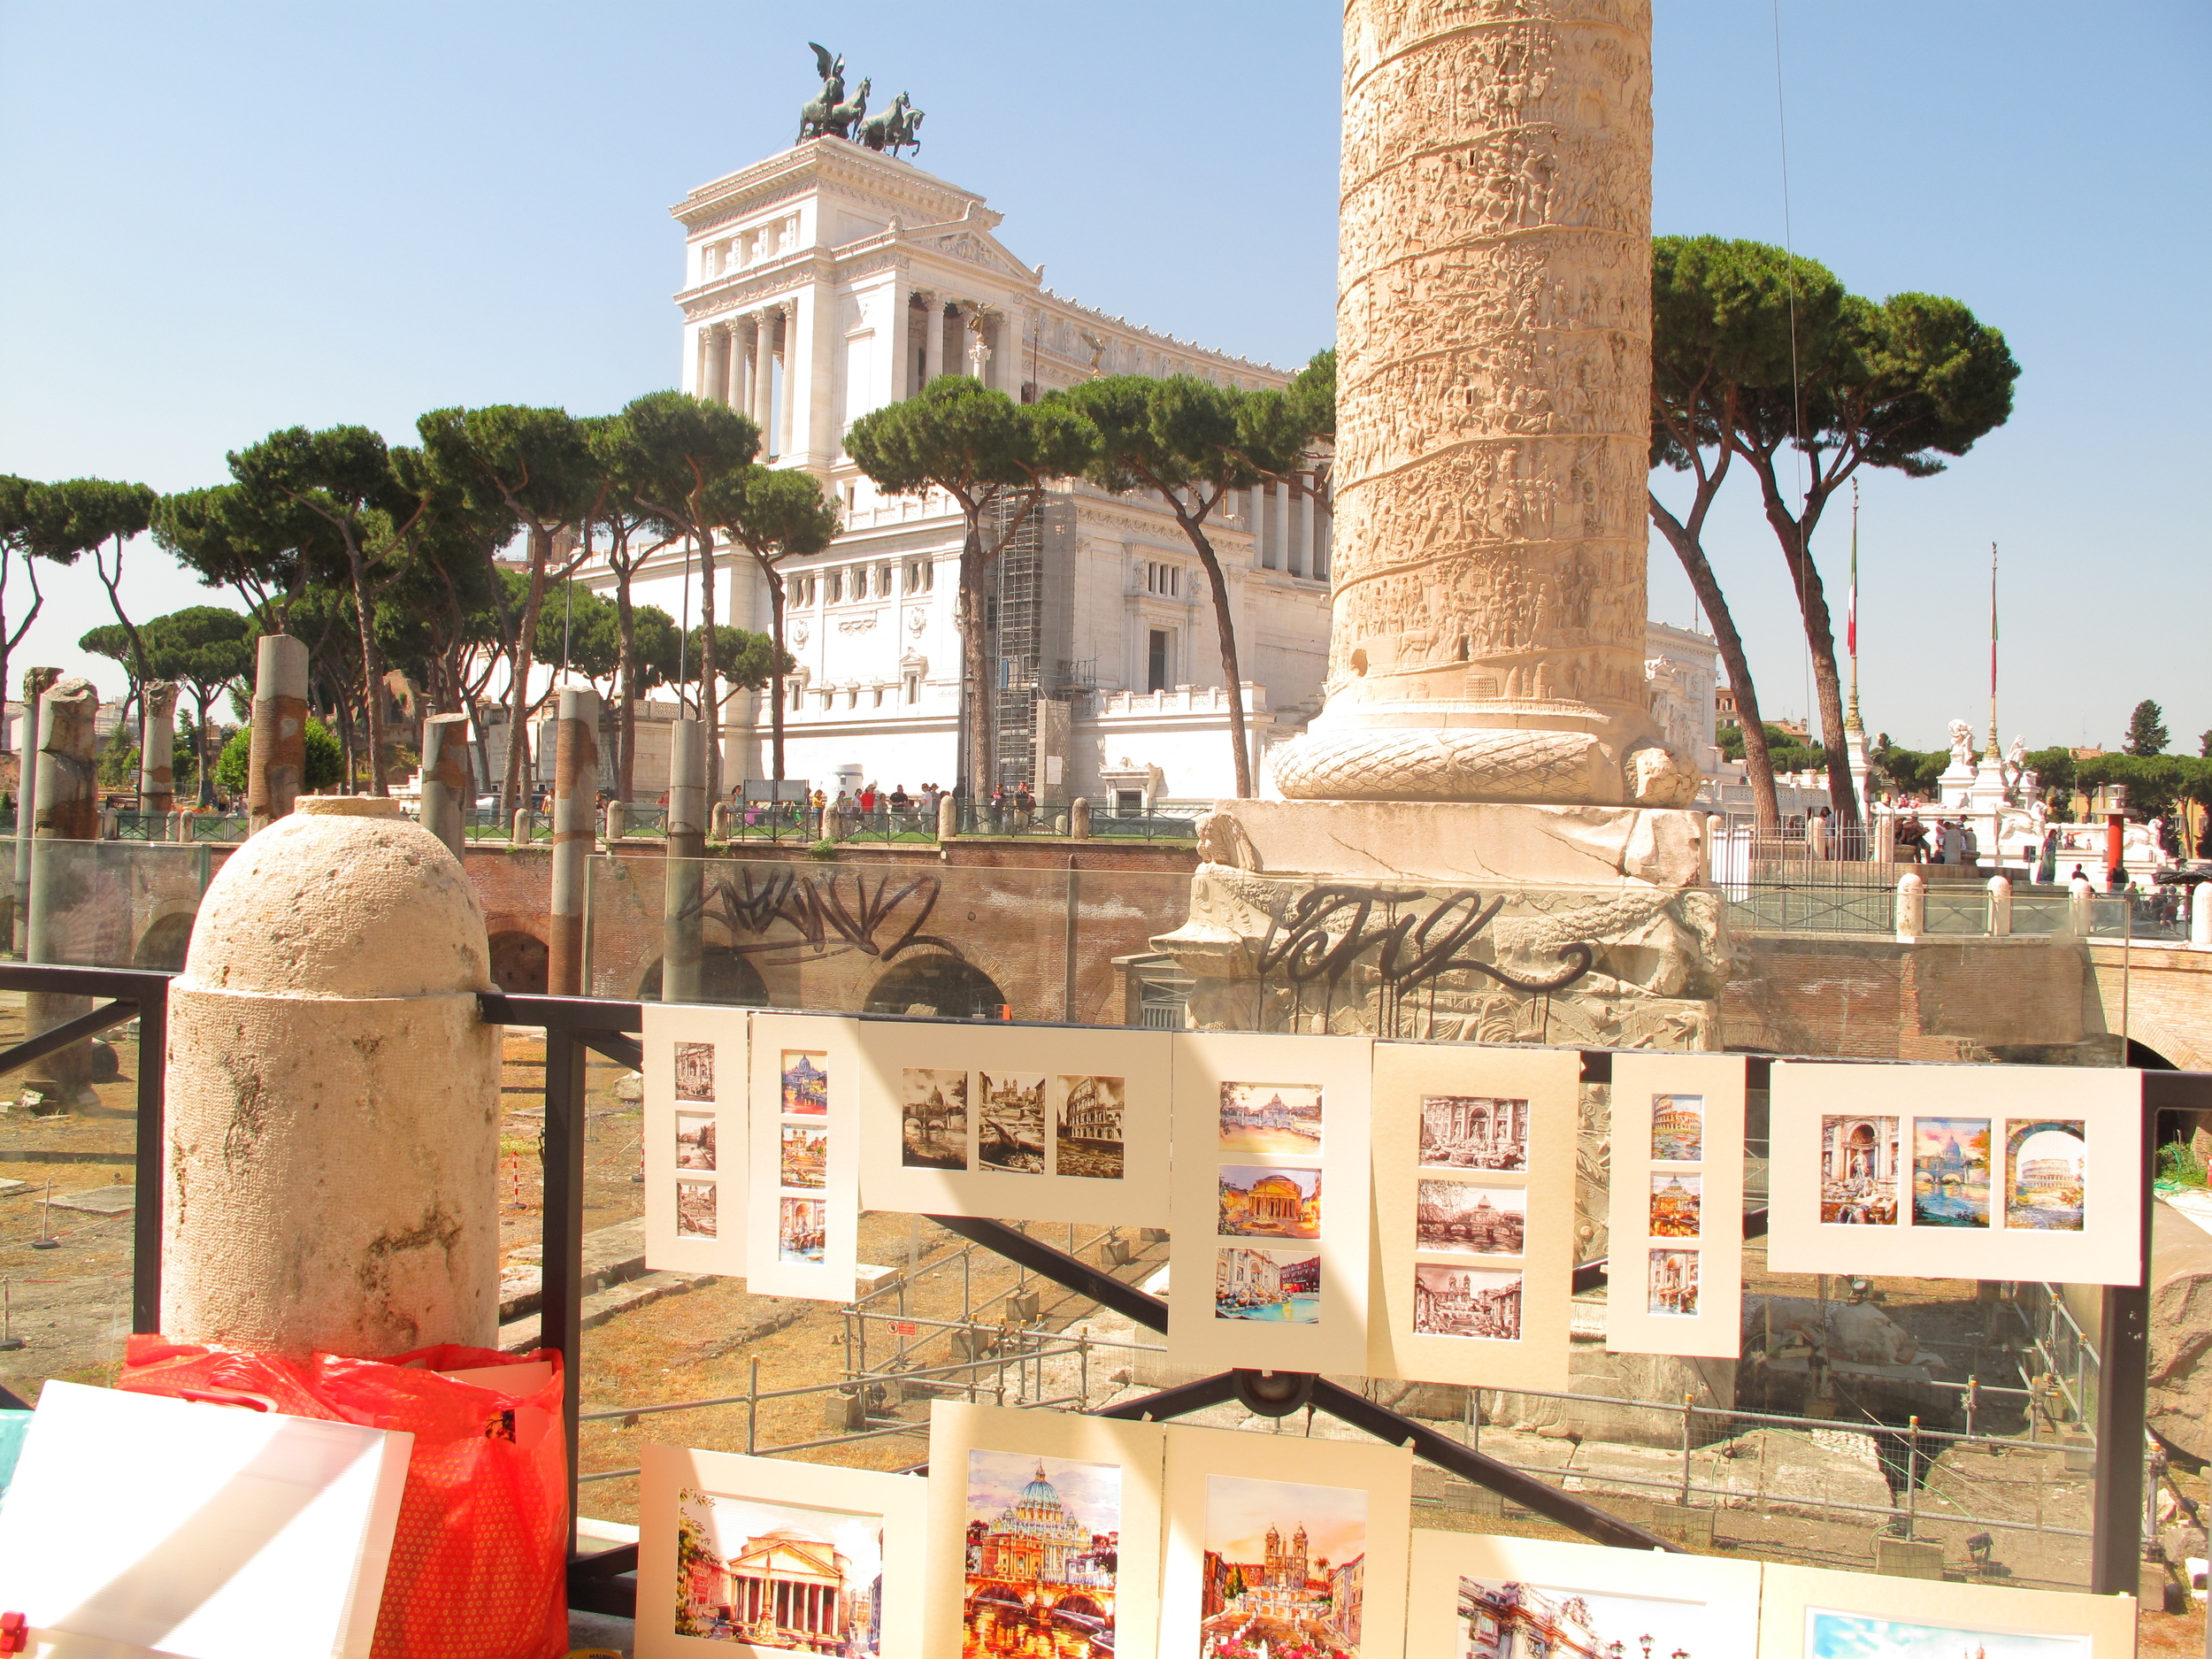 Roadside paintings and the view of the Altare della Patria, Rome